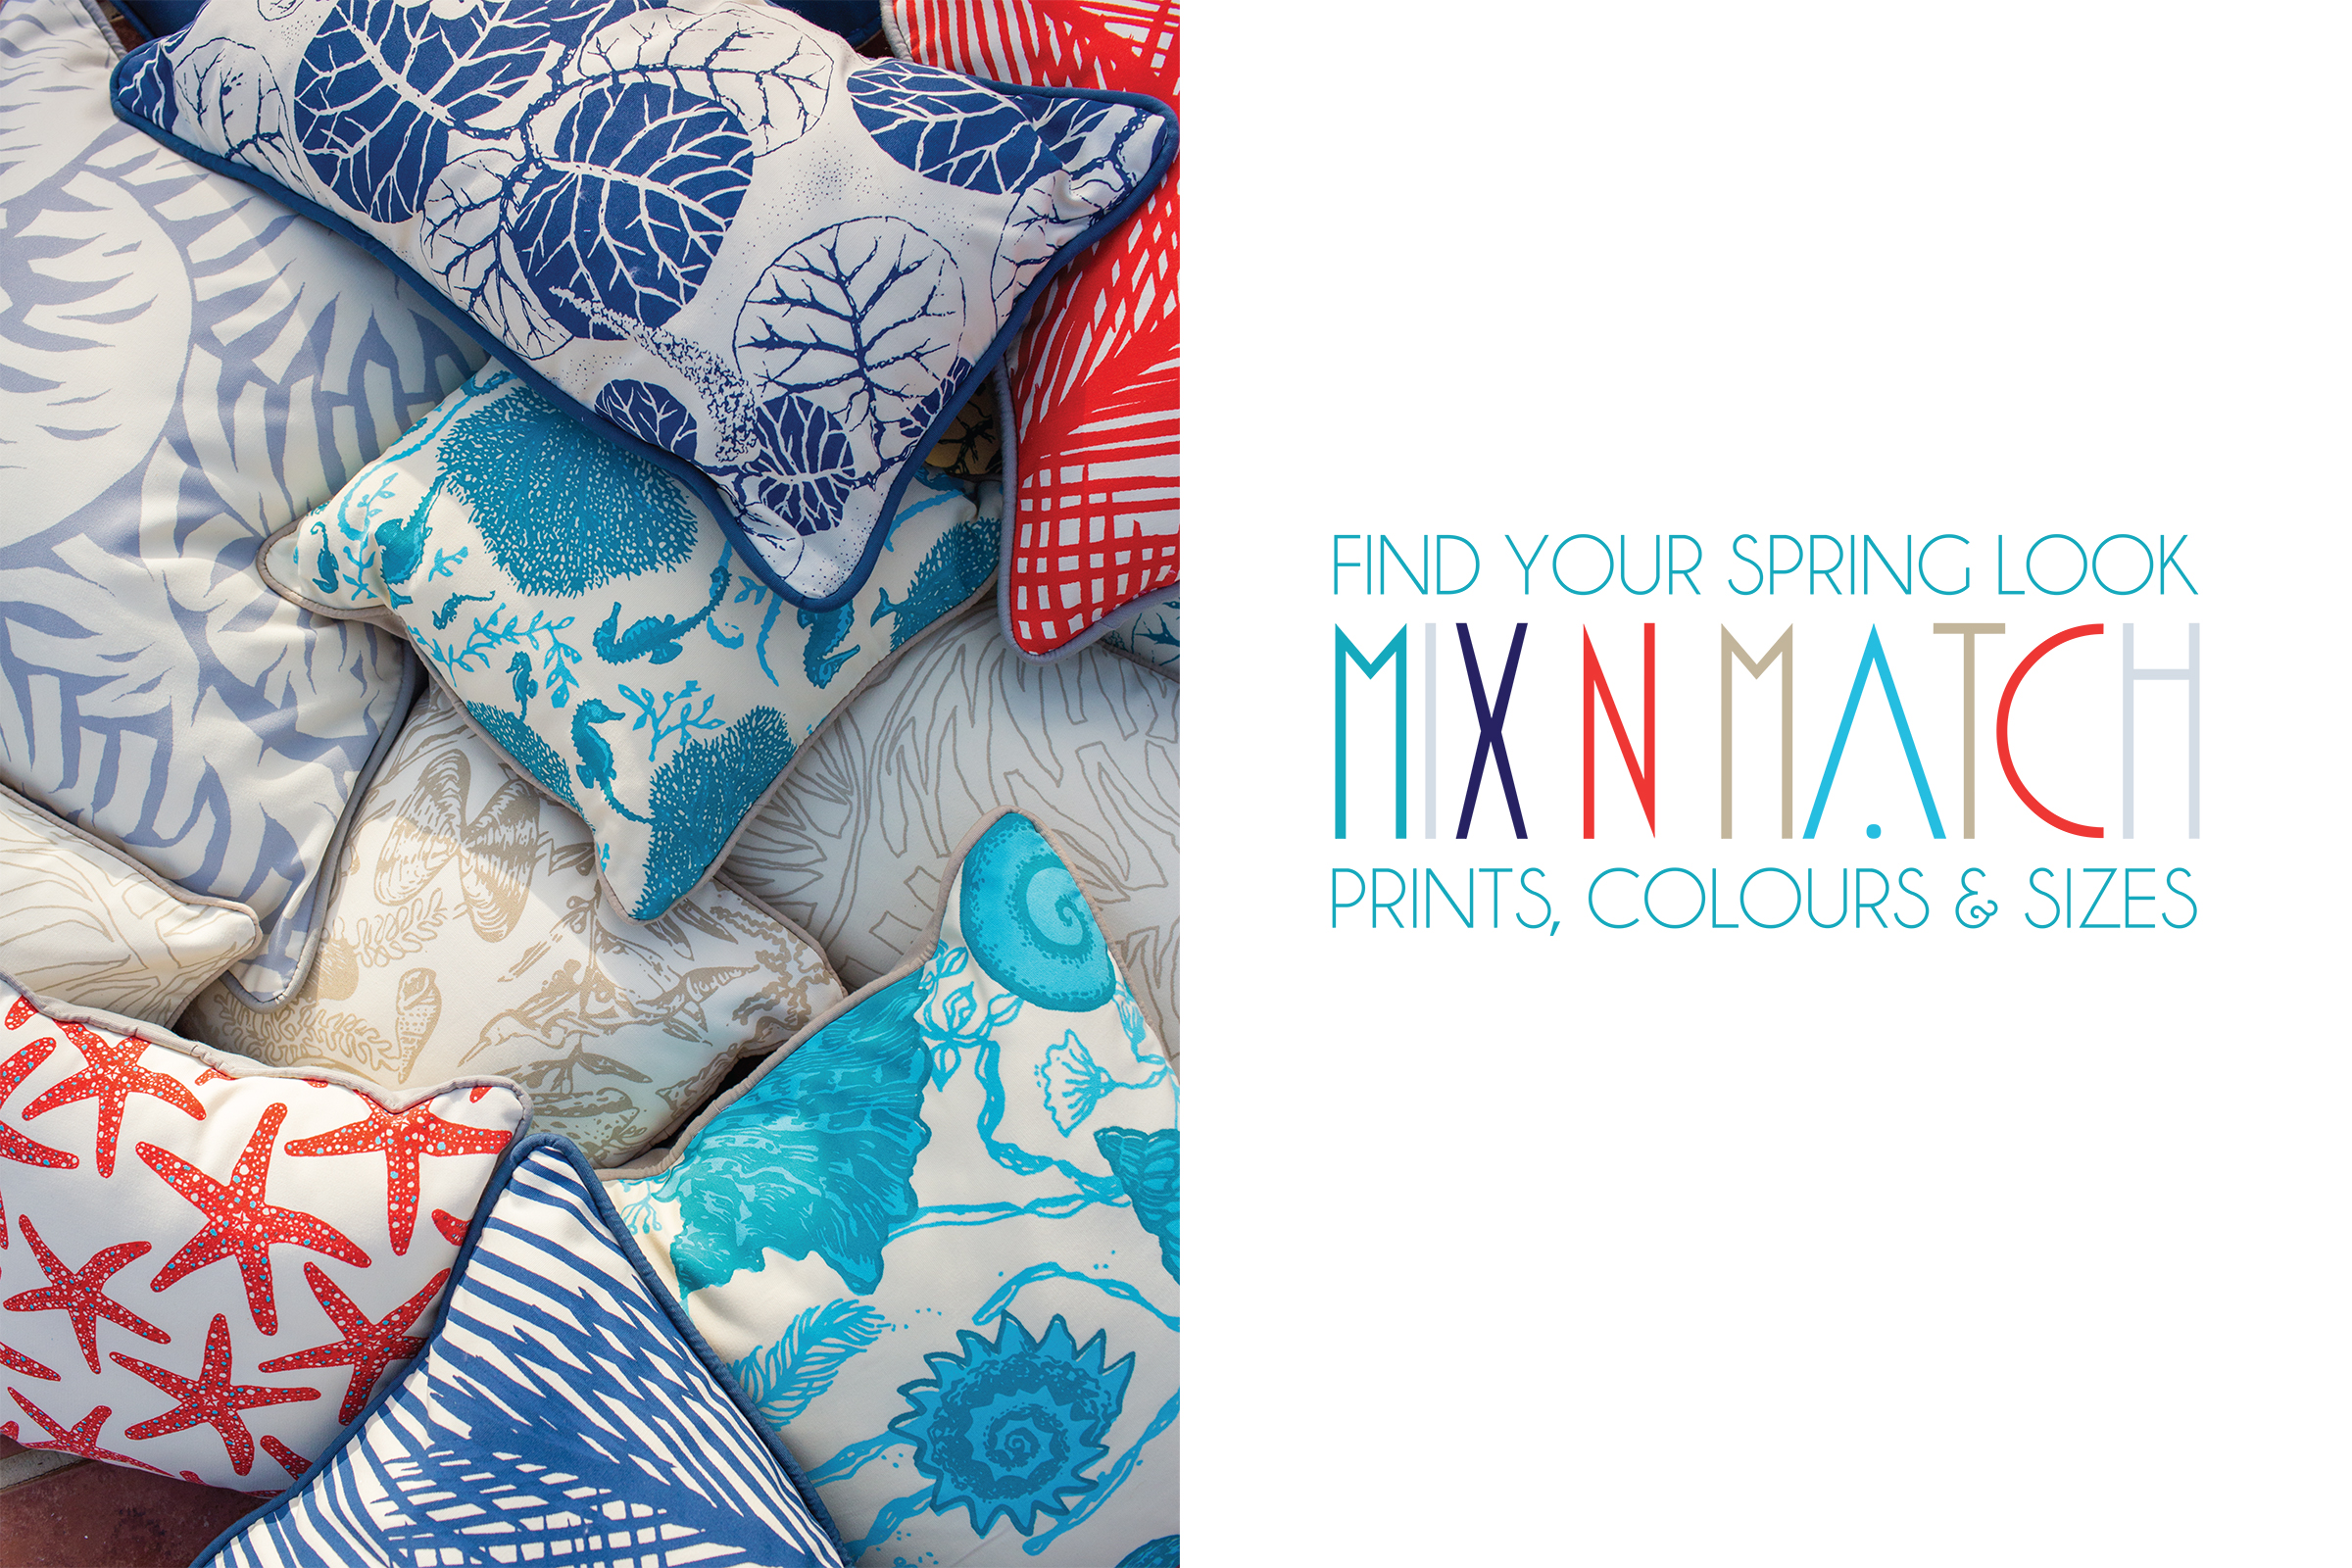 hand printed outdoor fabrics in assorted island prints and colours, on sale for the month of march